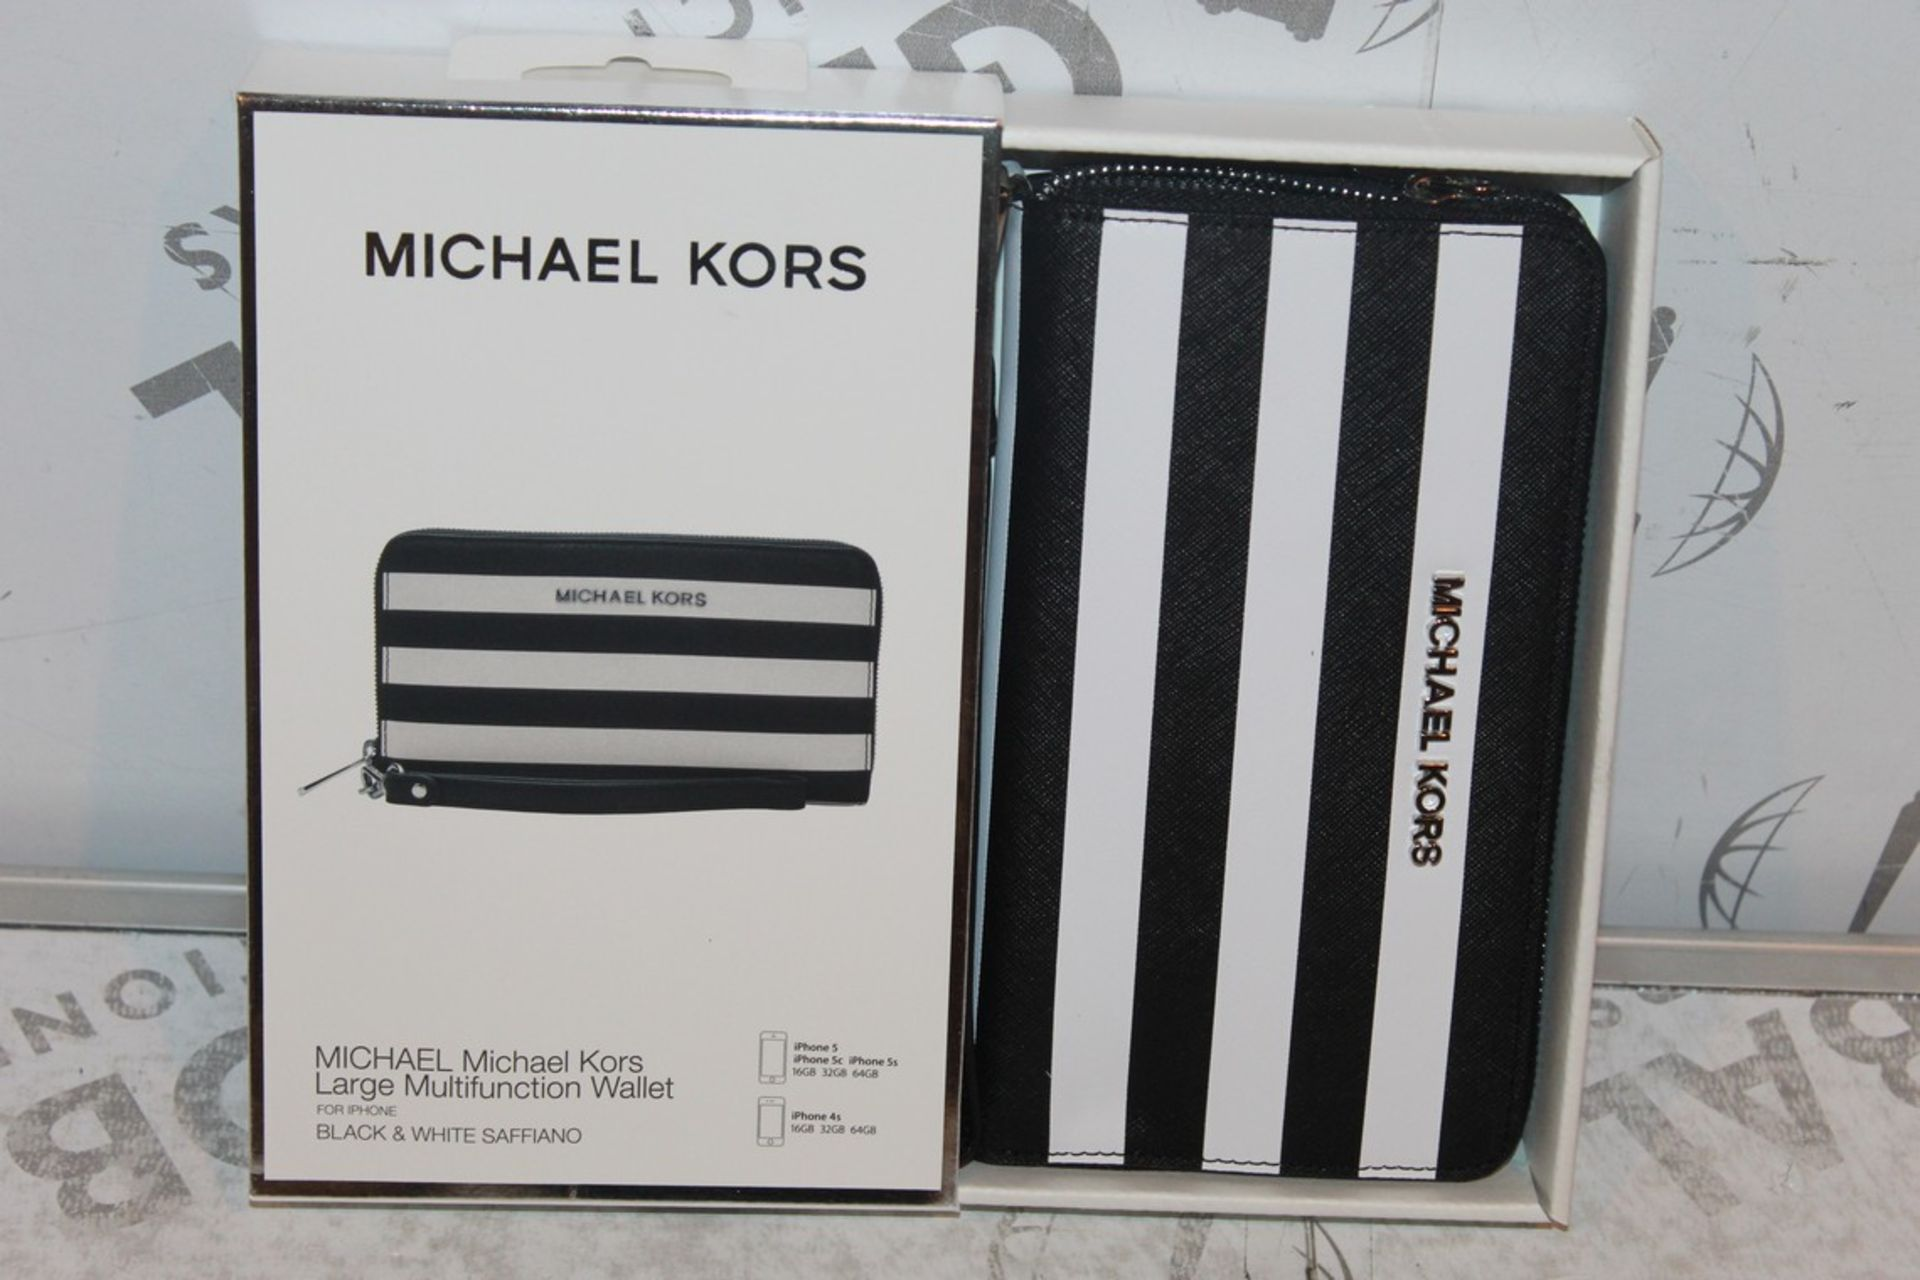 Lot 45 - Boxed Brand-New Michael Kors, Large Multifunction, Black and White Saffiano, Wallet, RRP£55.00